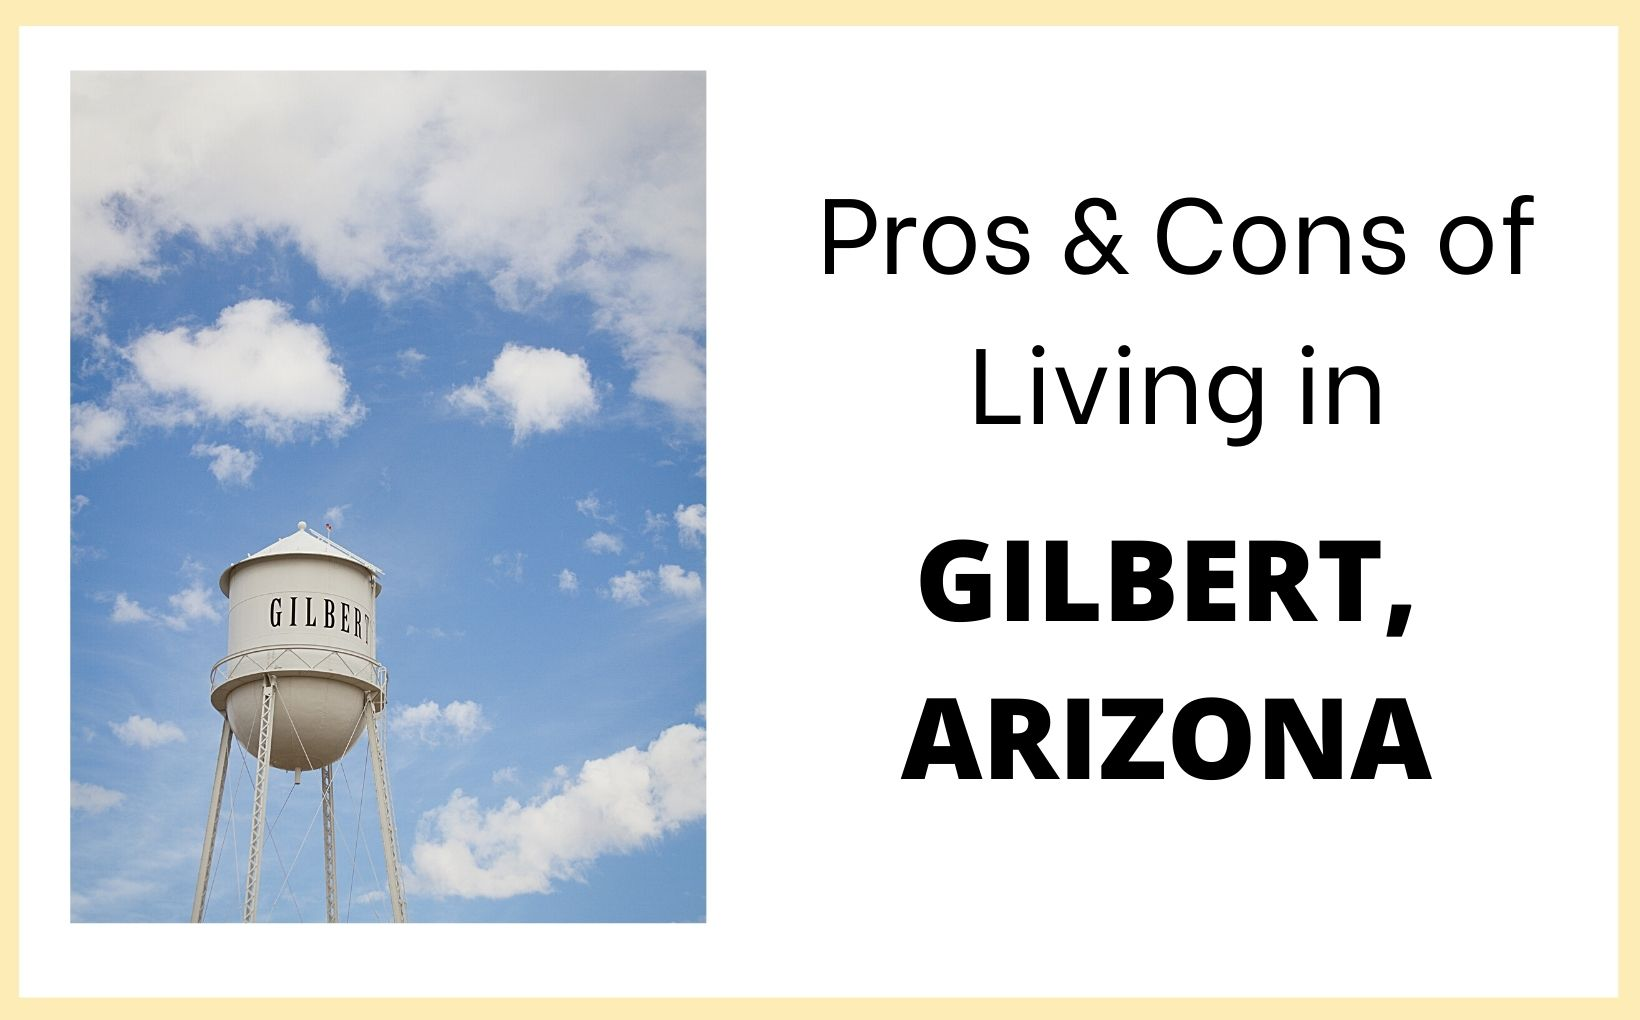 Pros and Cons of Living in Gilbert, Arizona feature image